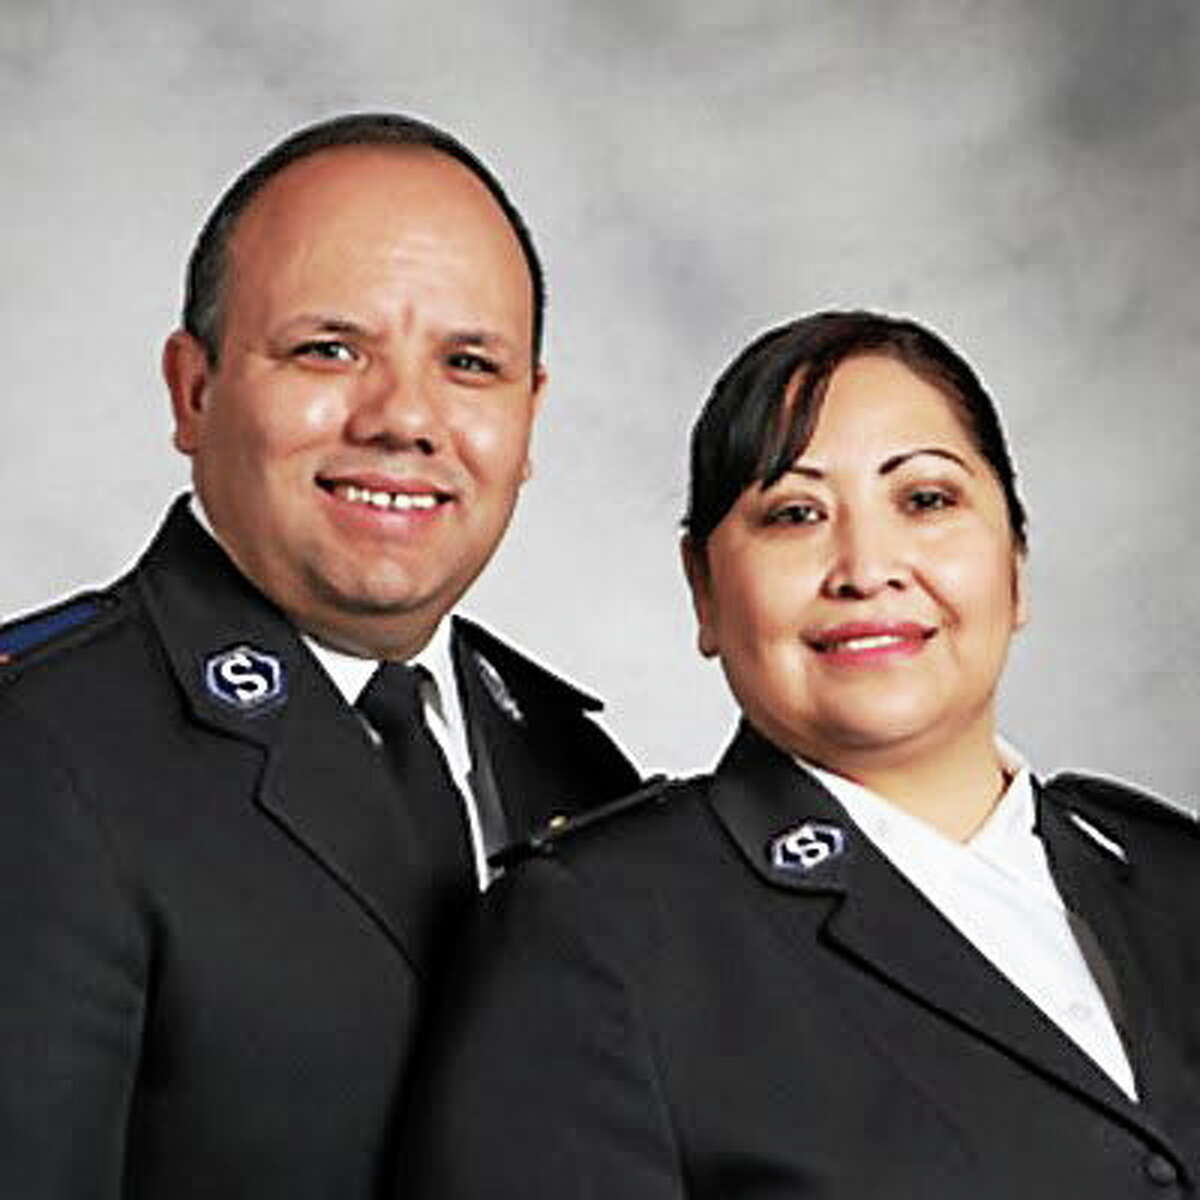 Submitted photo. Jose and Raquel Hernandez took over the Salvation Army office in Middletown in June.